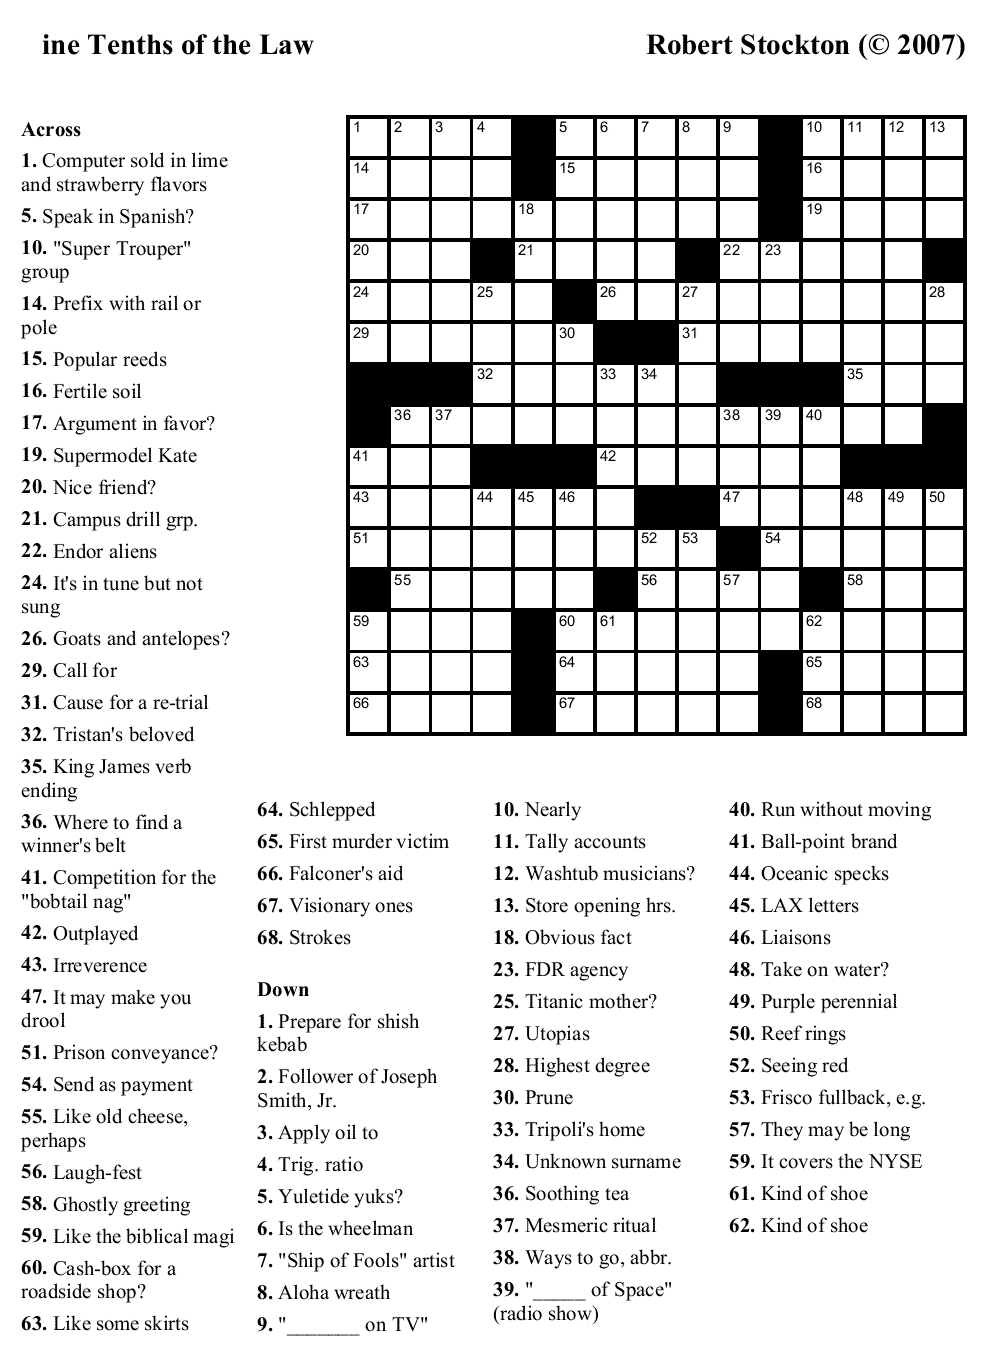 photo about Printable Ny Times Crossword Puzzles referred to as Simple printable crossword puzzels - InfoCap Ltd.